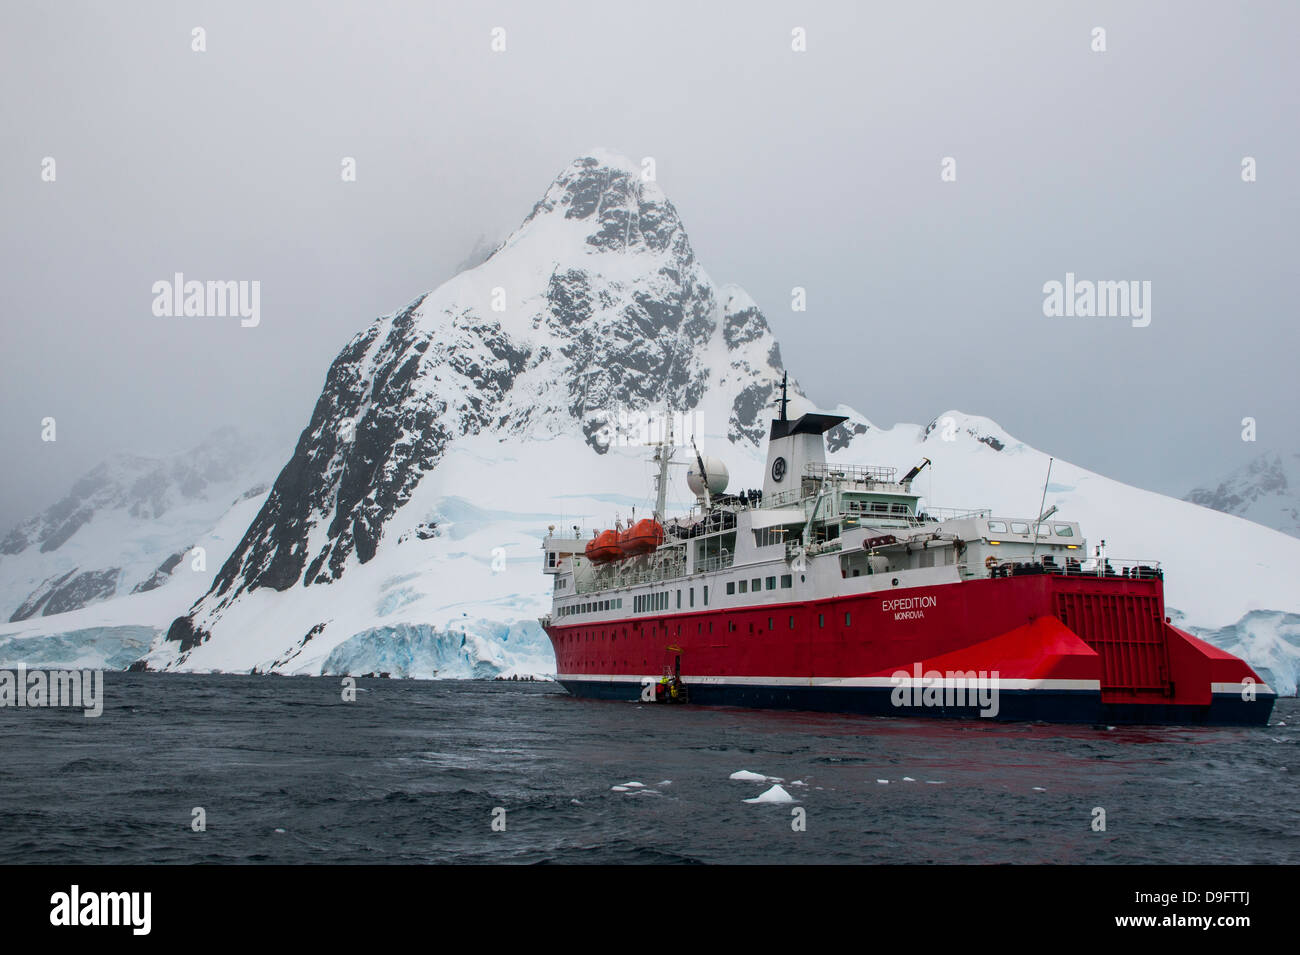 Cruise ship in the Lemaire Channel, Antarctica, Polar Regions - Stock Image